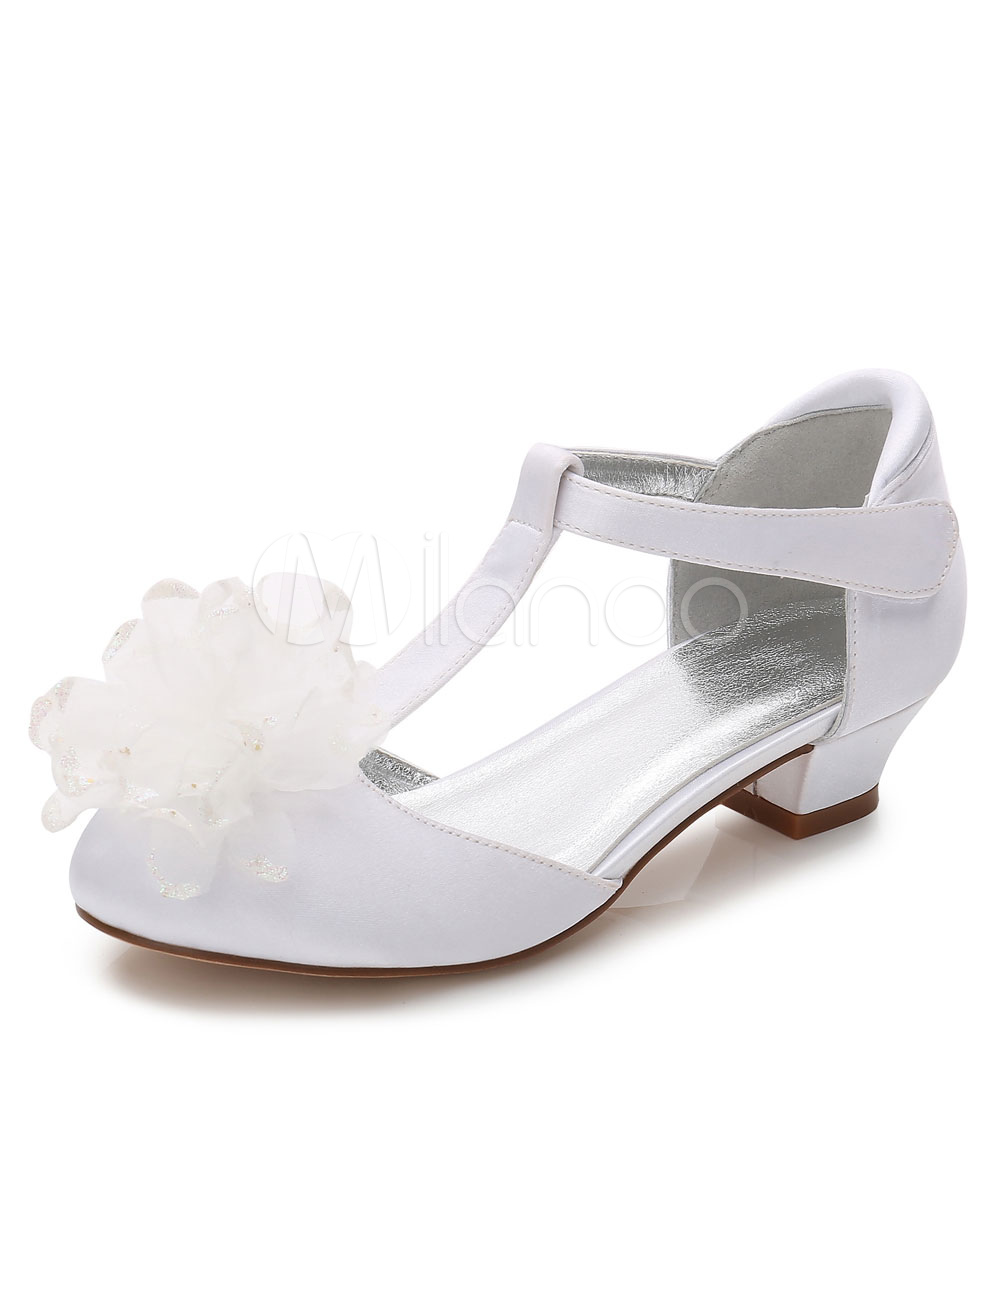 White Flower Girls Shoes Chunky Heel Round Toe Pumps Milanoo